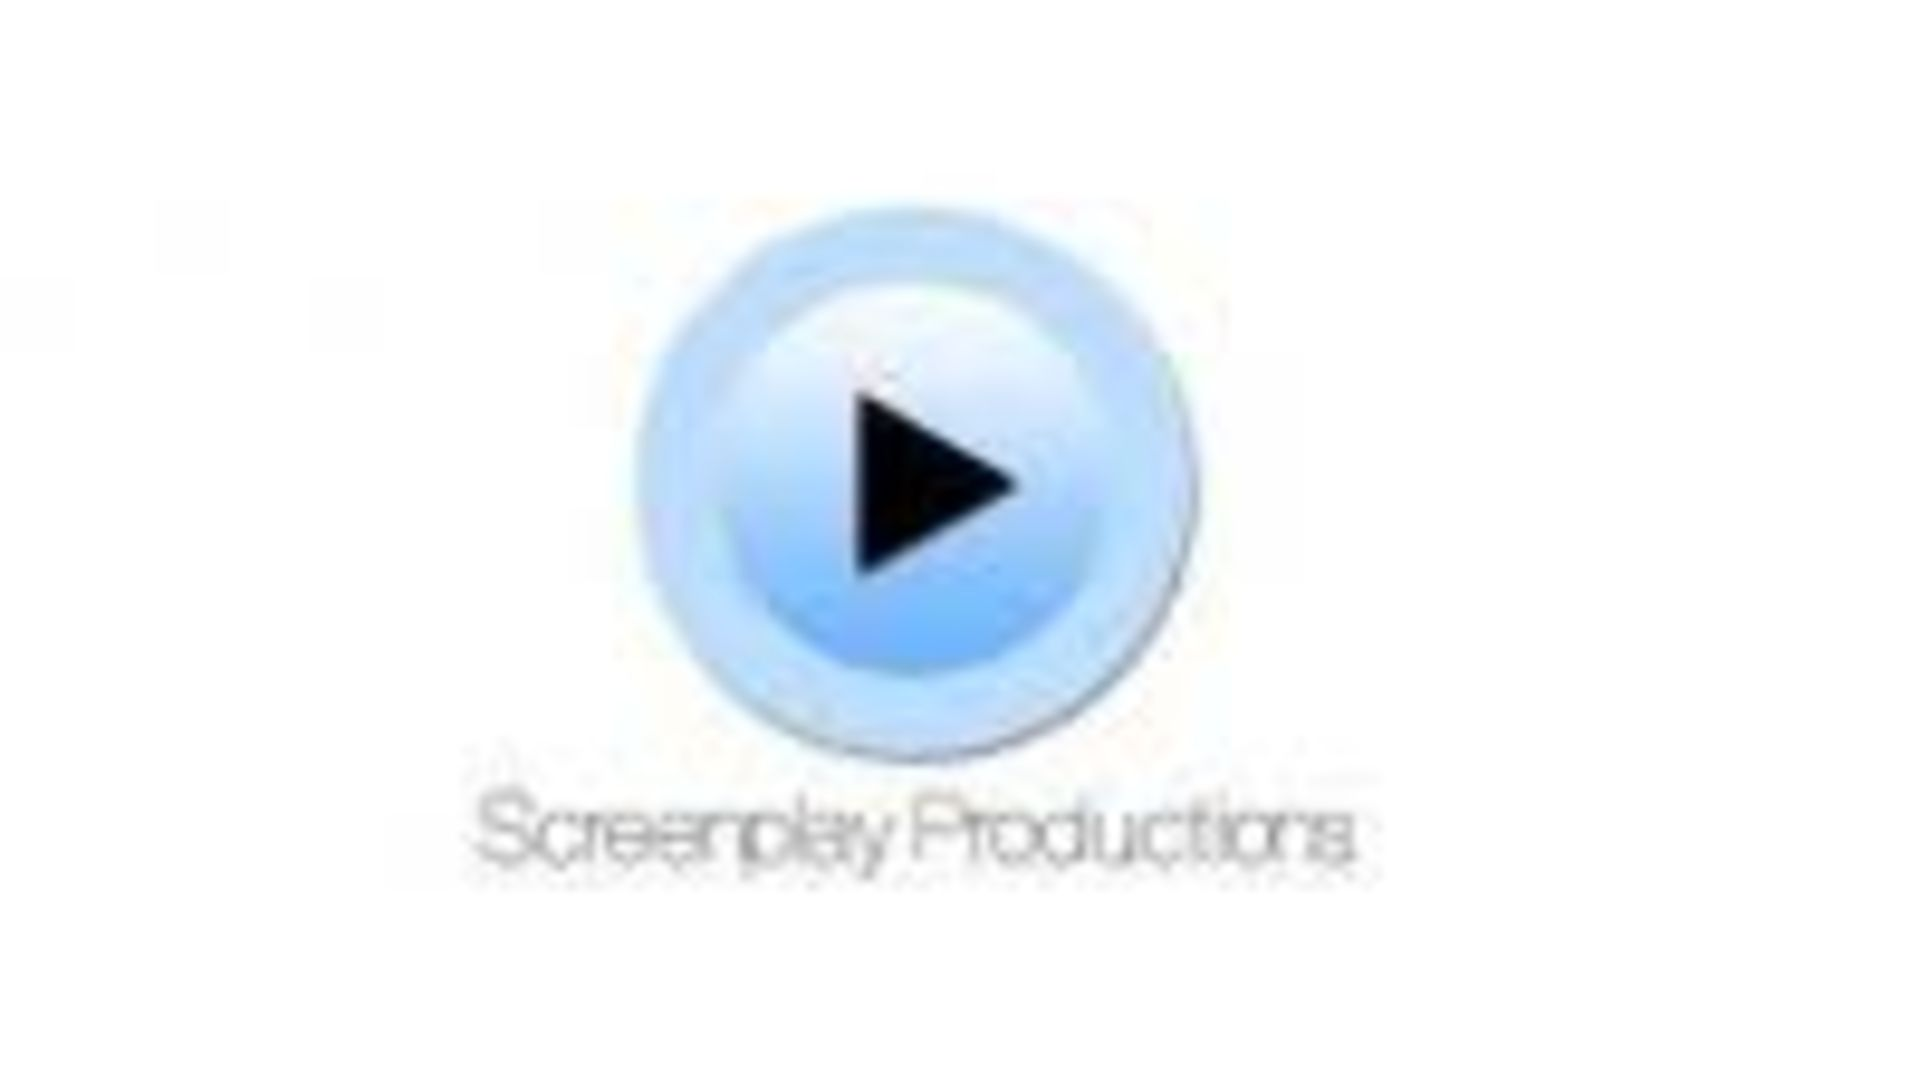 PT. Screenplay Productions